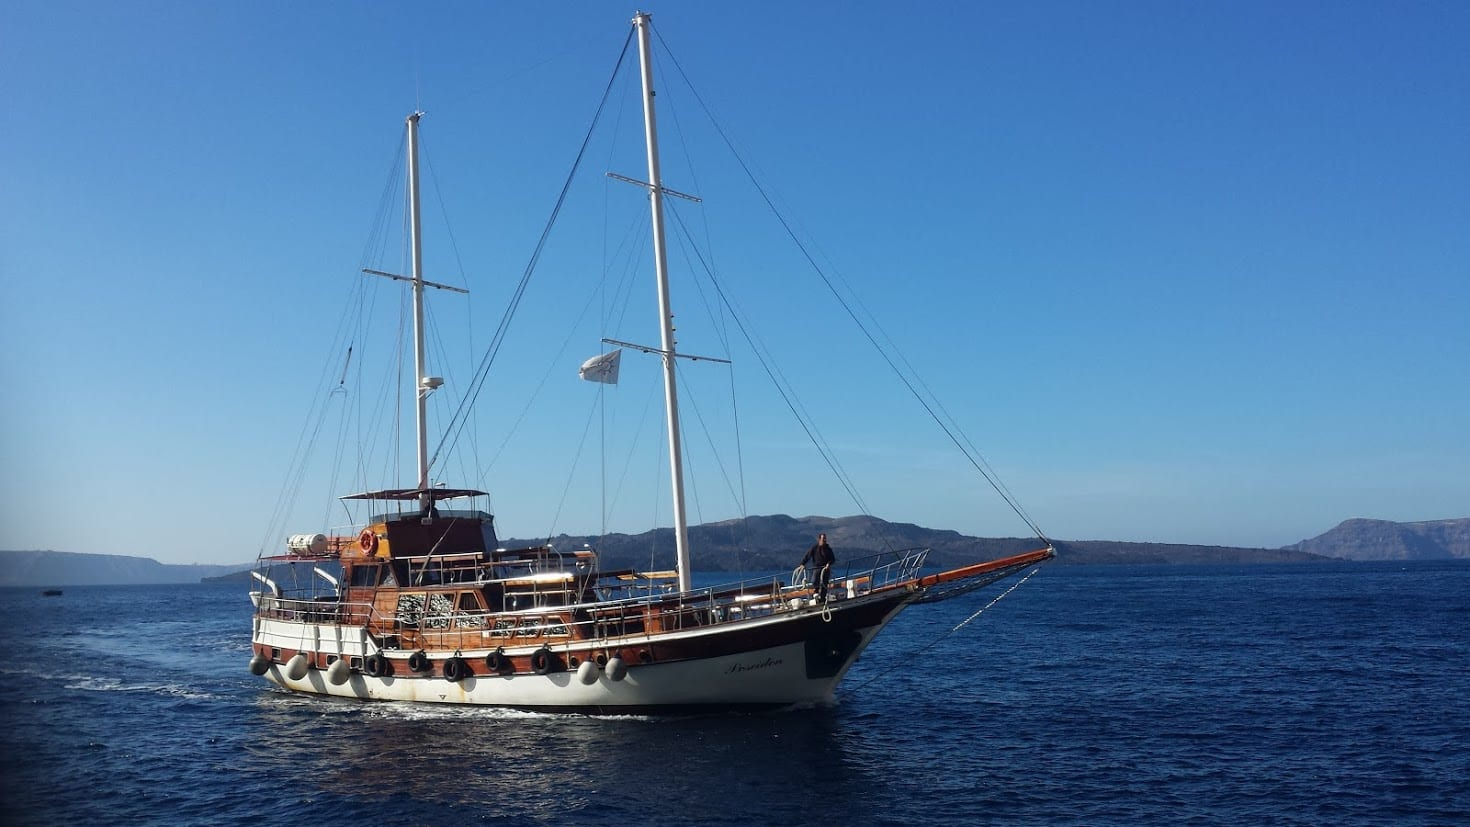 Visiting the Santorini volcano on a boat trip in the winter